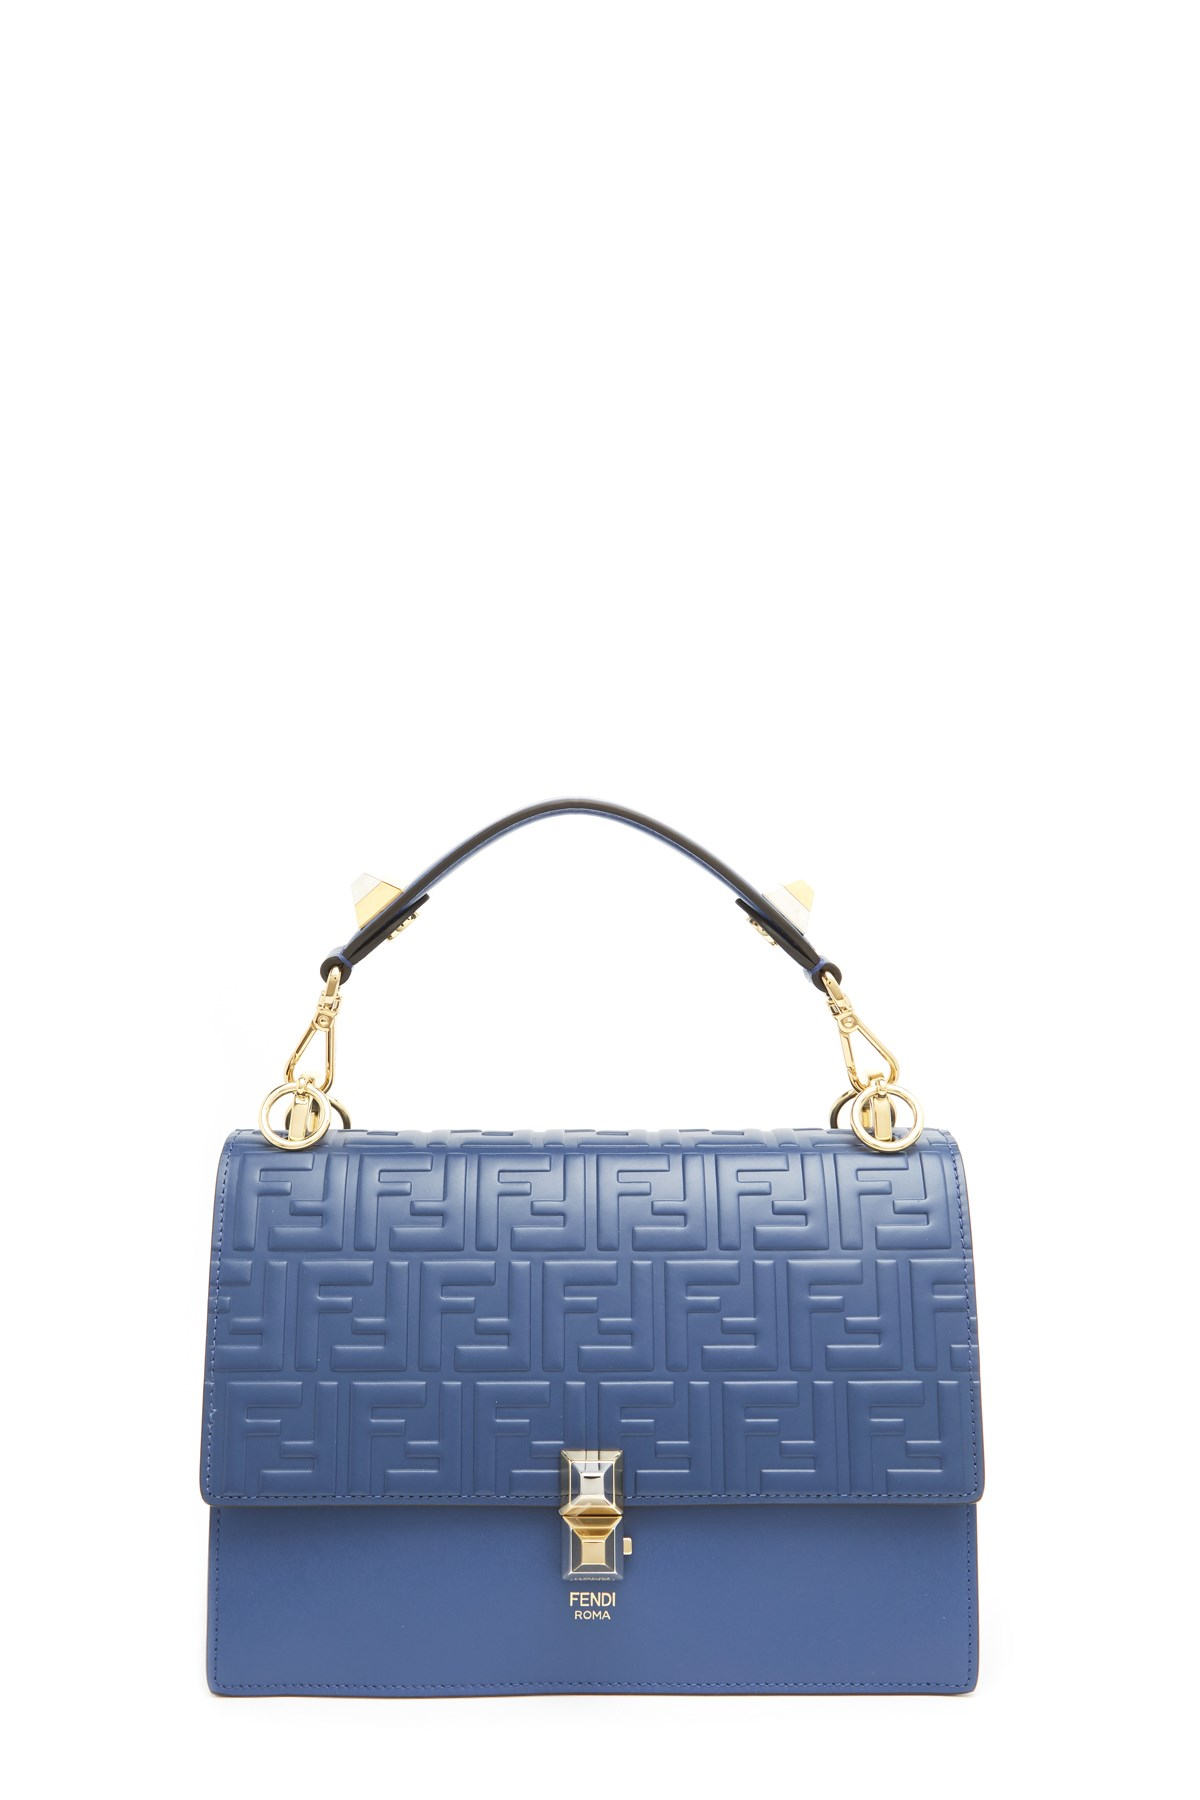 fendi  kan i  hand bag available on julian-fashion.com - 61177 482dea21040